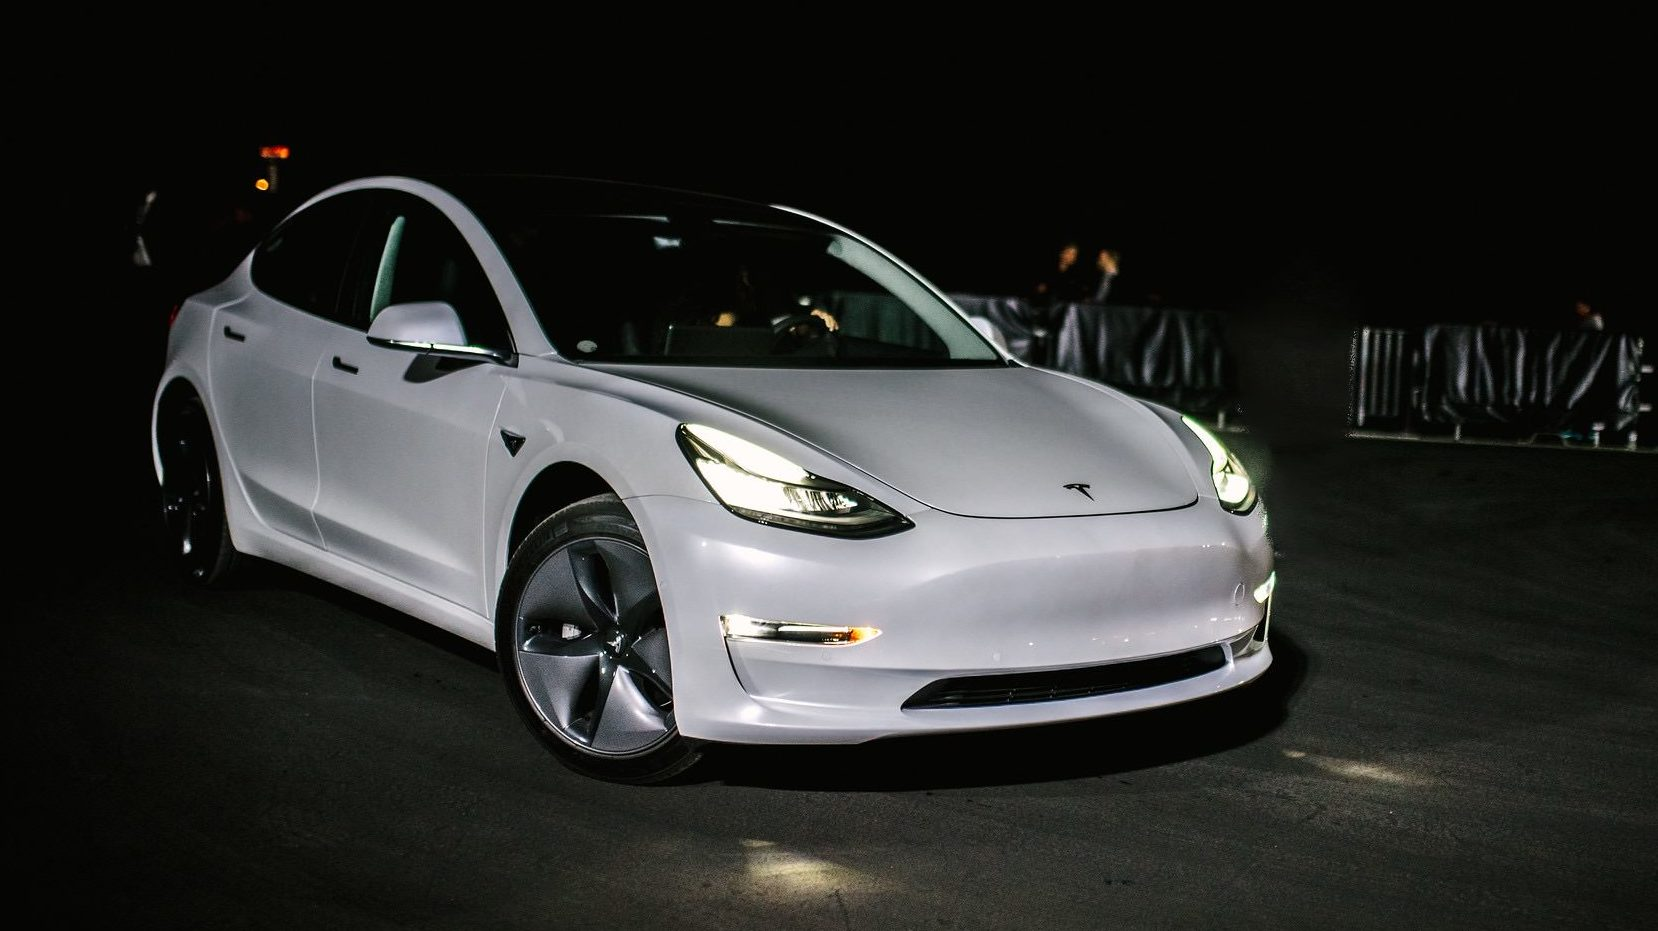 Tesla Model 3 Has An 80 5 Kwh Battery And 258hp According